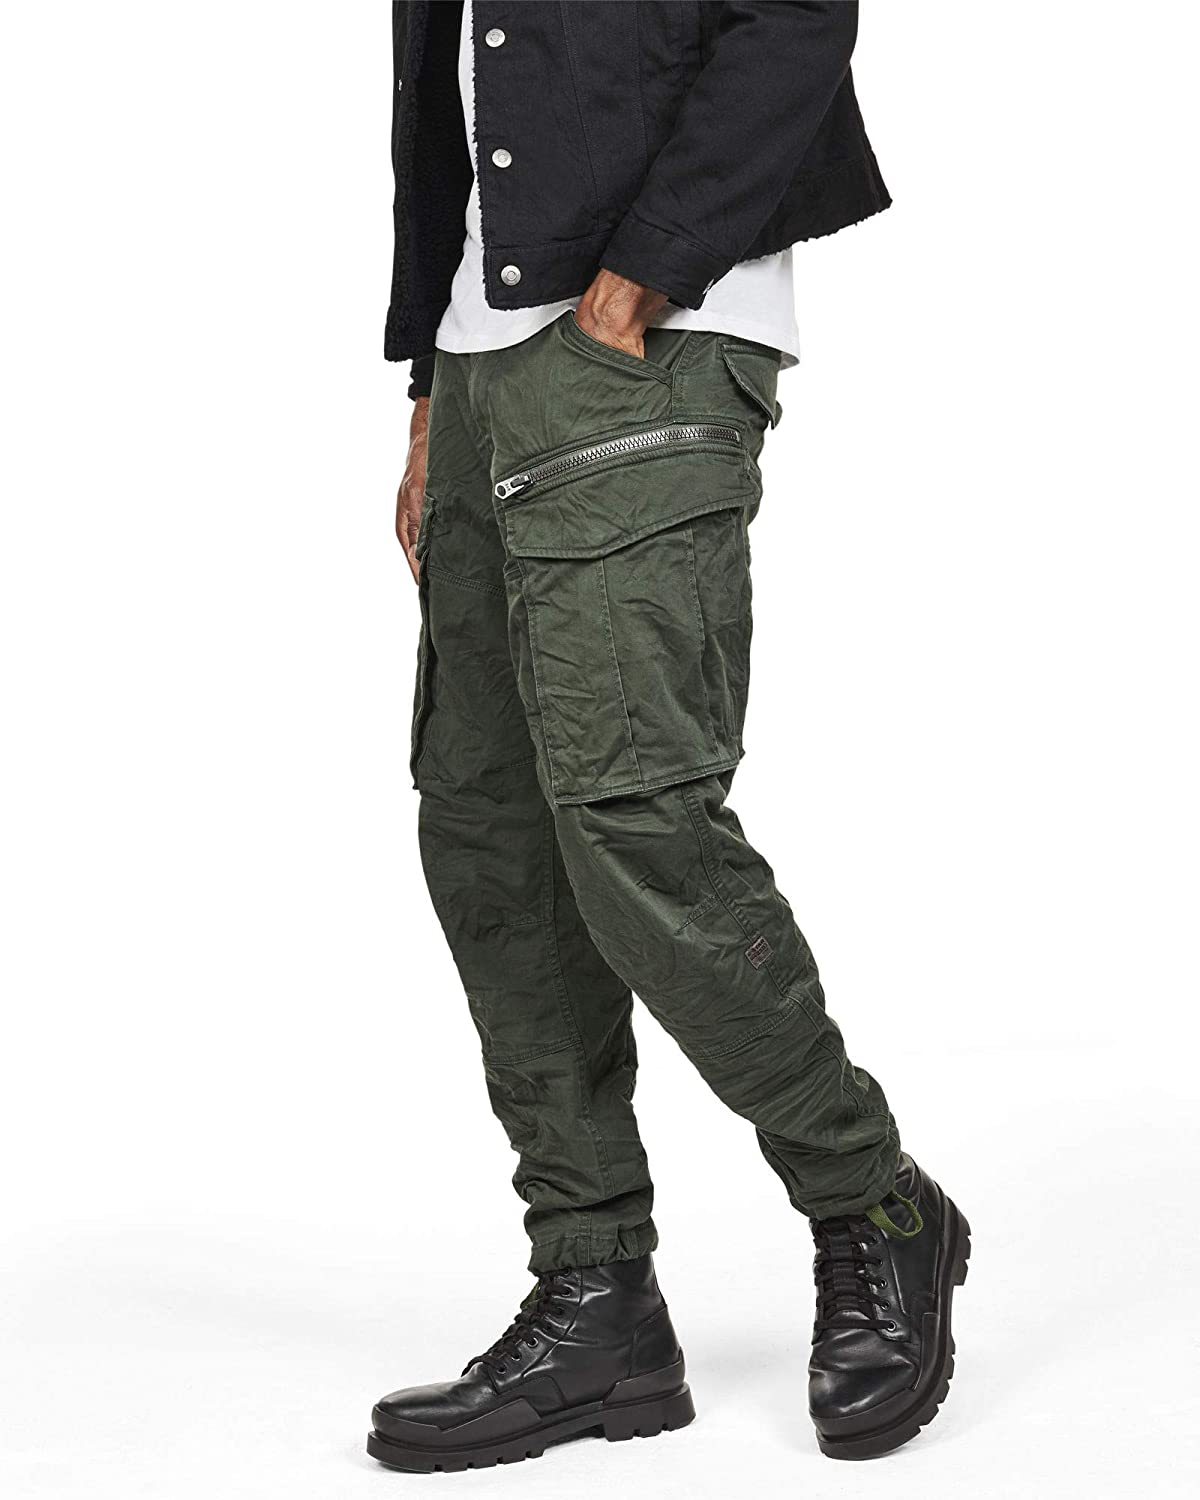 e790b661284 G-STAR RAW Men's Rovic Zip 3D Straight Tapered Pants Trouser, Green (dk  vermont green 7179), W31/L32: Amazon.co.uk: Clothing